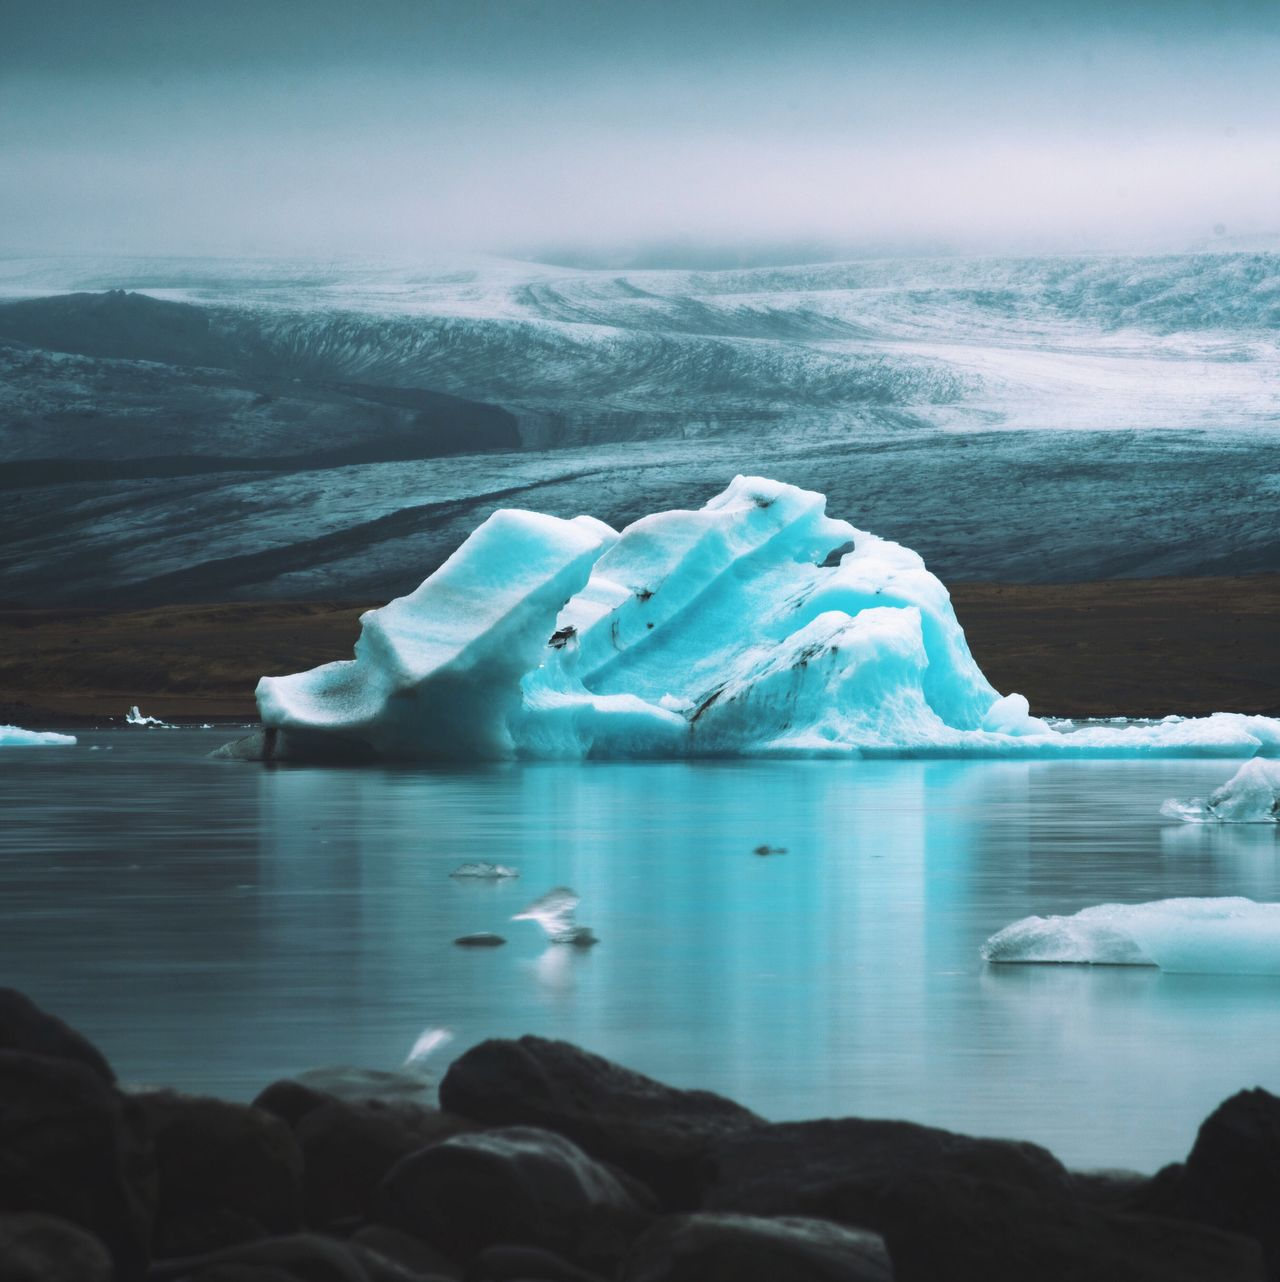 Water Ice Nature Sea Beauty In Nature Scenics Frozen Iceberg Glacier Cold Temperature Tranquility Tranquil Scene Idyllic Melting Winter Sky Outdoors Floating On Water No People Day Landscape Iceland Jökulsárlón